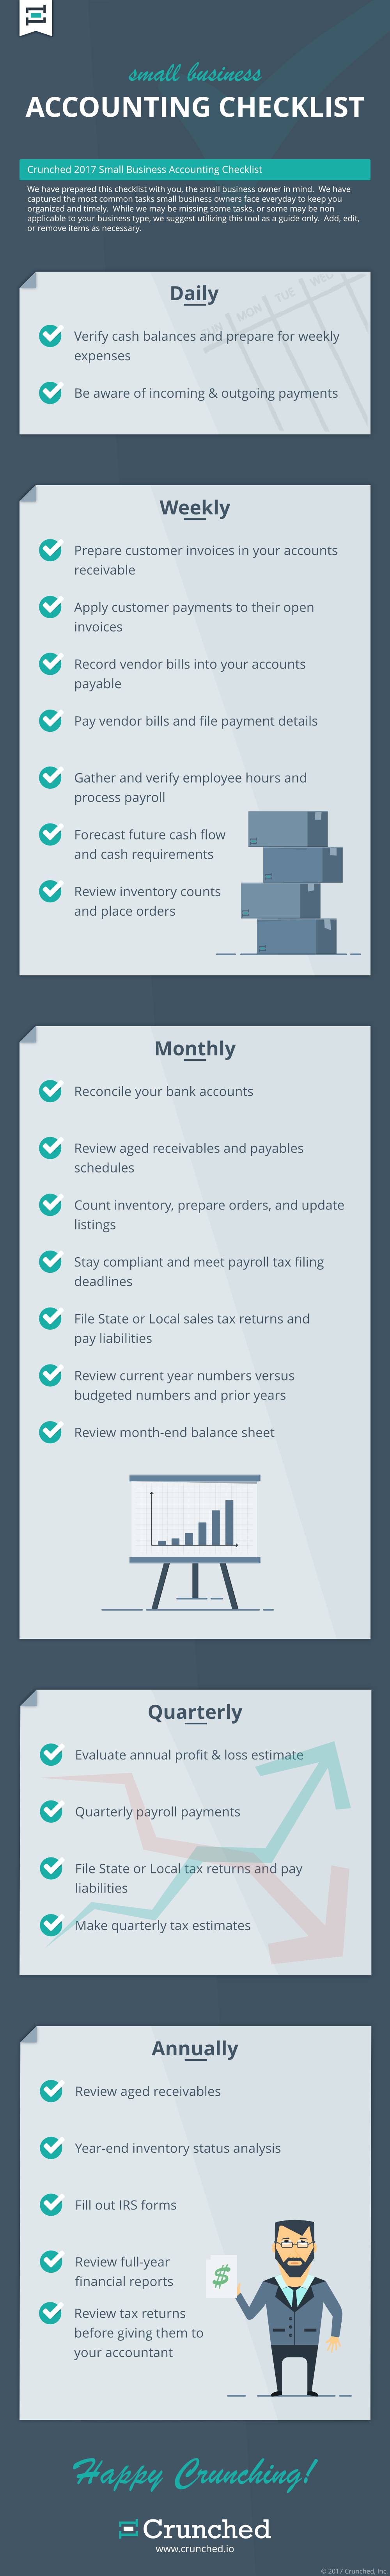 Crunched Small Business Accounting Checklist